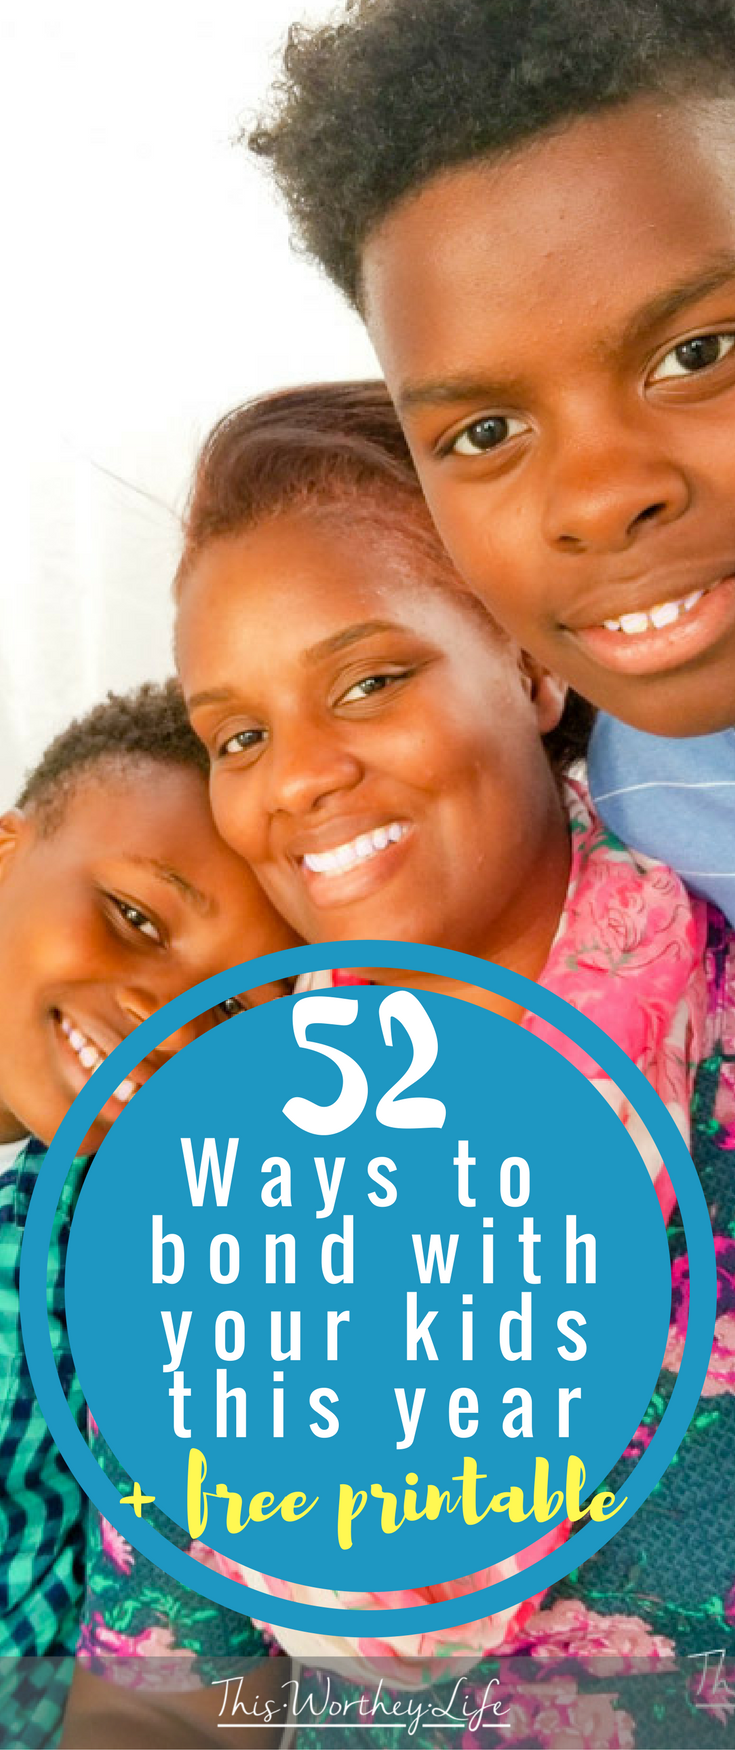 It's a new year, and a new way to start fresh with your kids. We've put together a list of 52 ways to bond with your kids this year you can check out on the blog. Get ideas on how to bond with your teens as well!